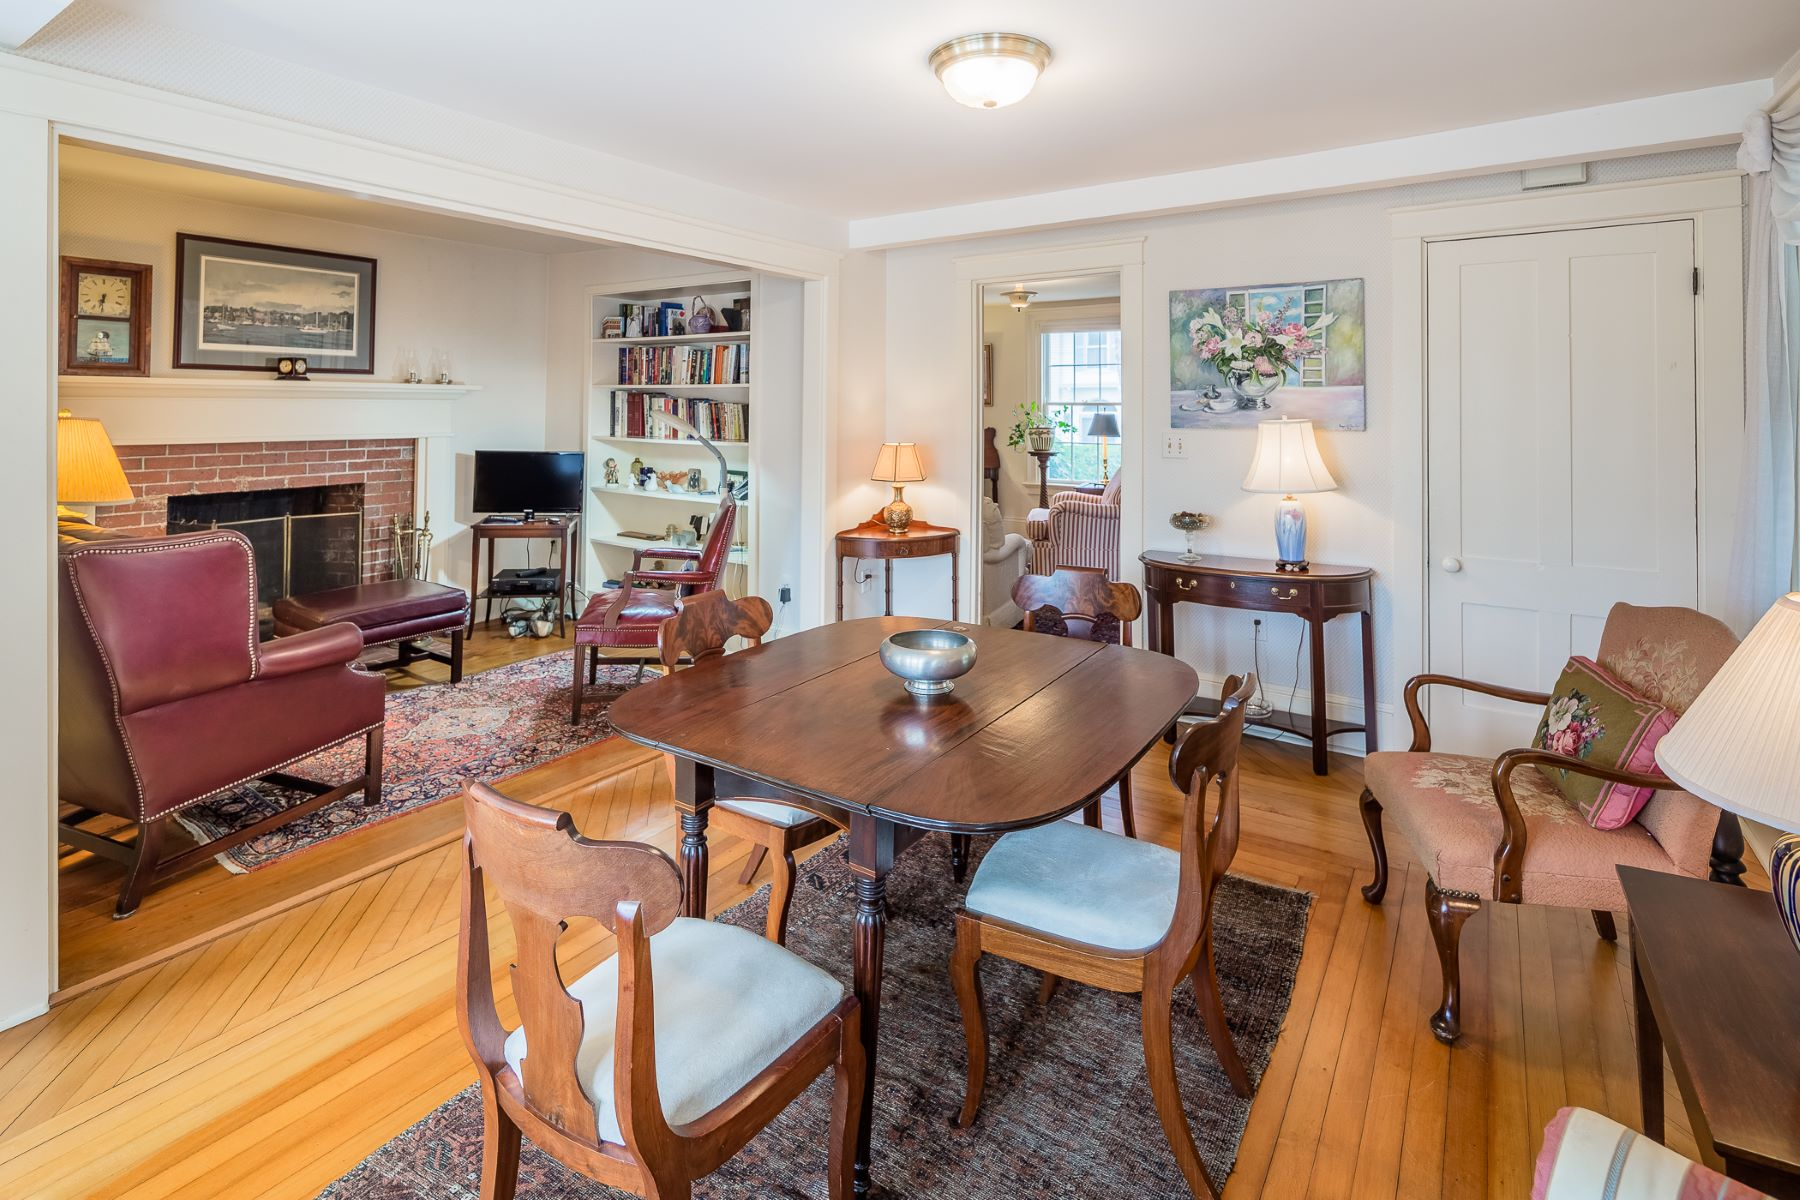 Additional photo for property listing at 36 Spear Street 36 Spear Street Rockport, Maine 04856 United States